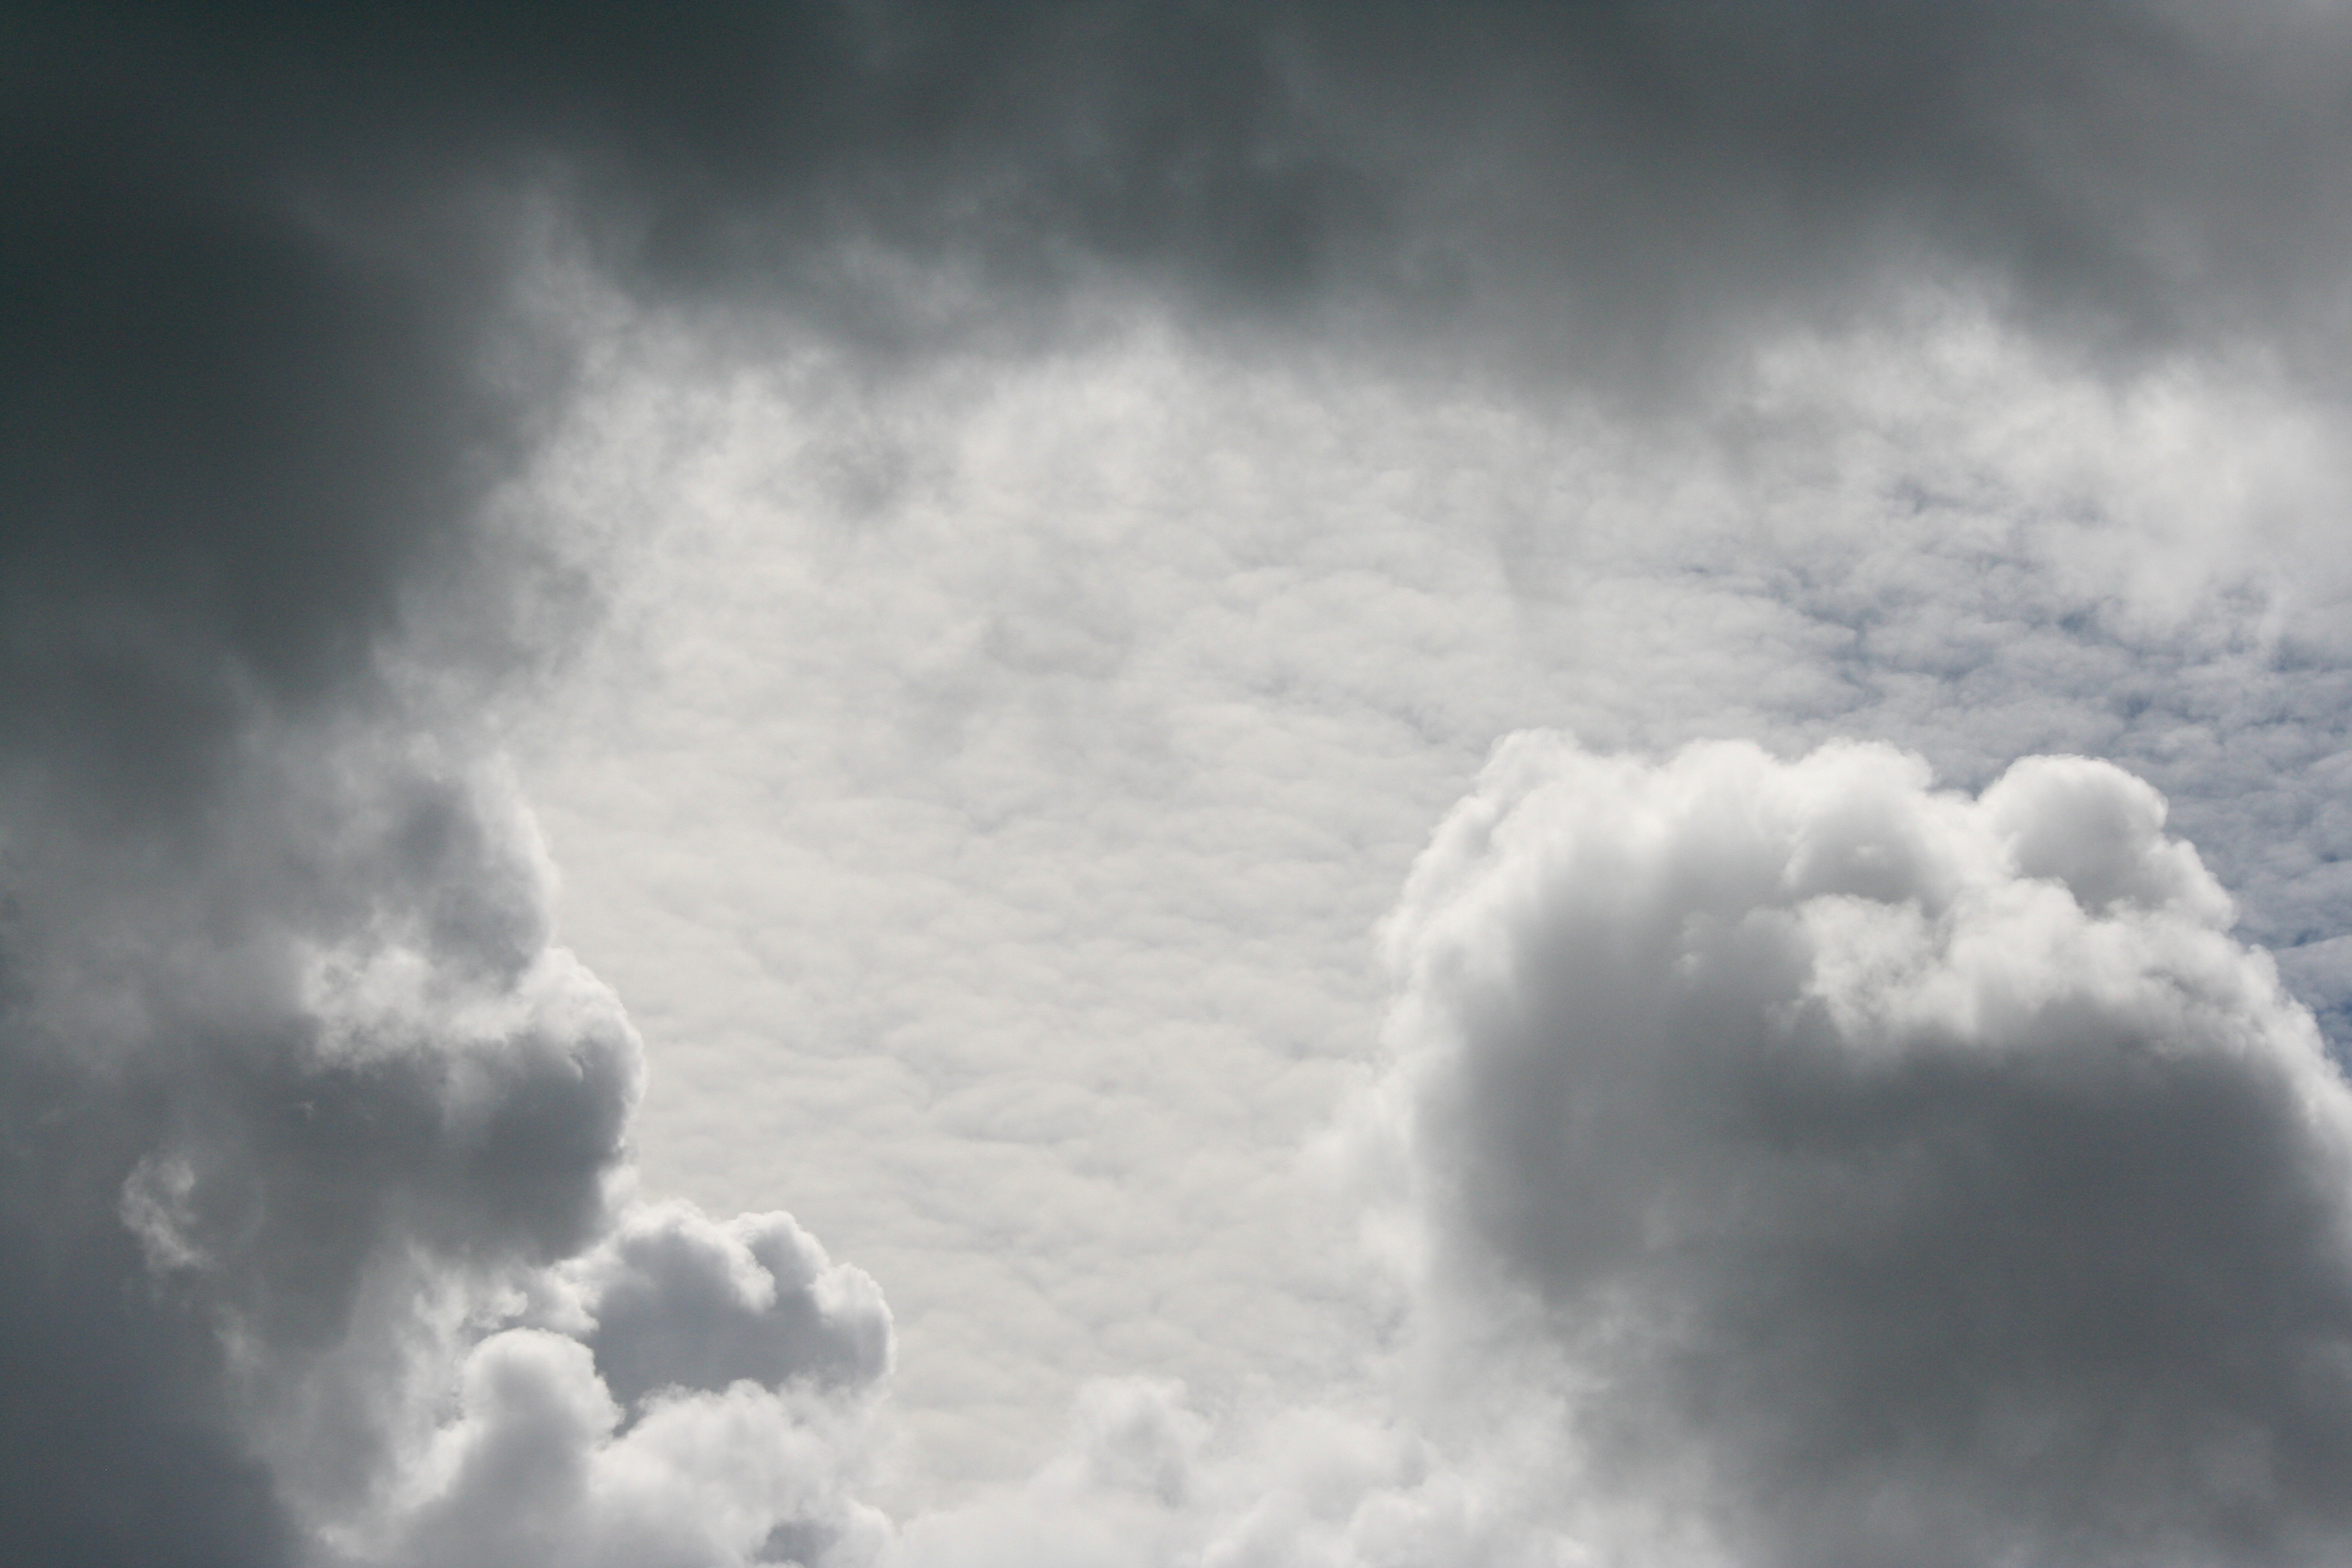 Snowy clouds by Lmih on DeviantArt